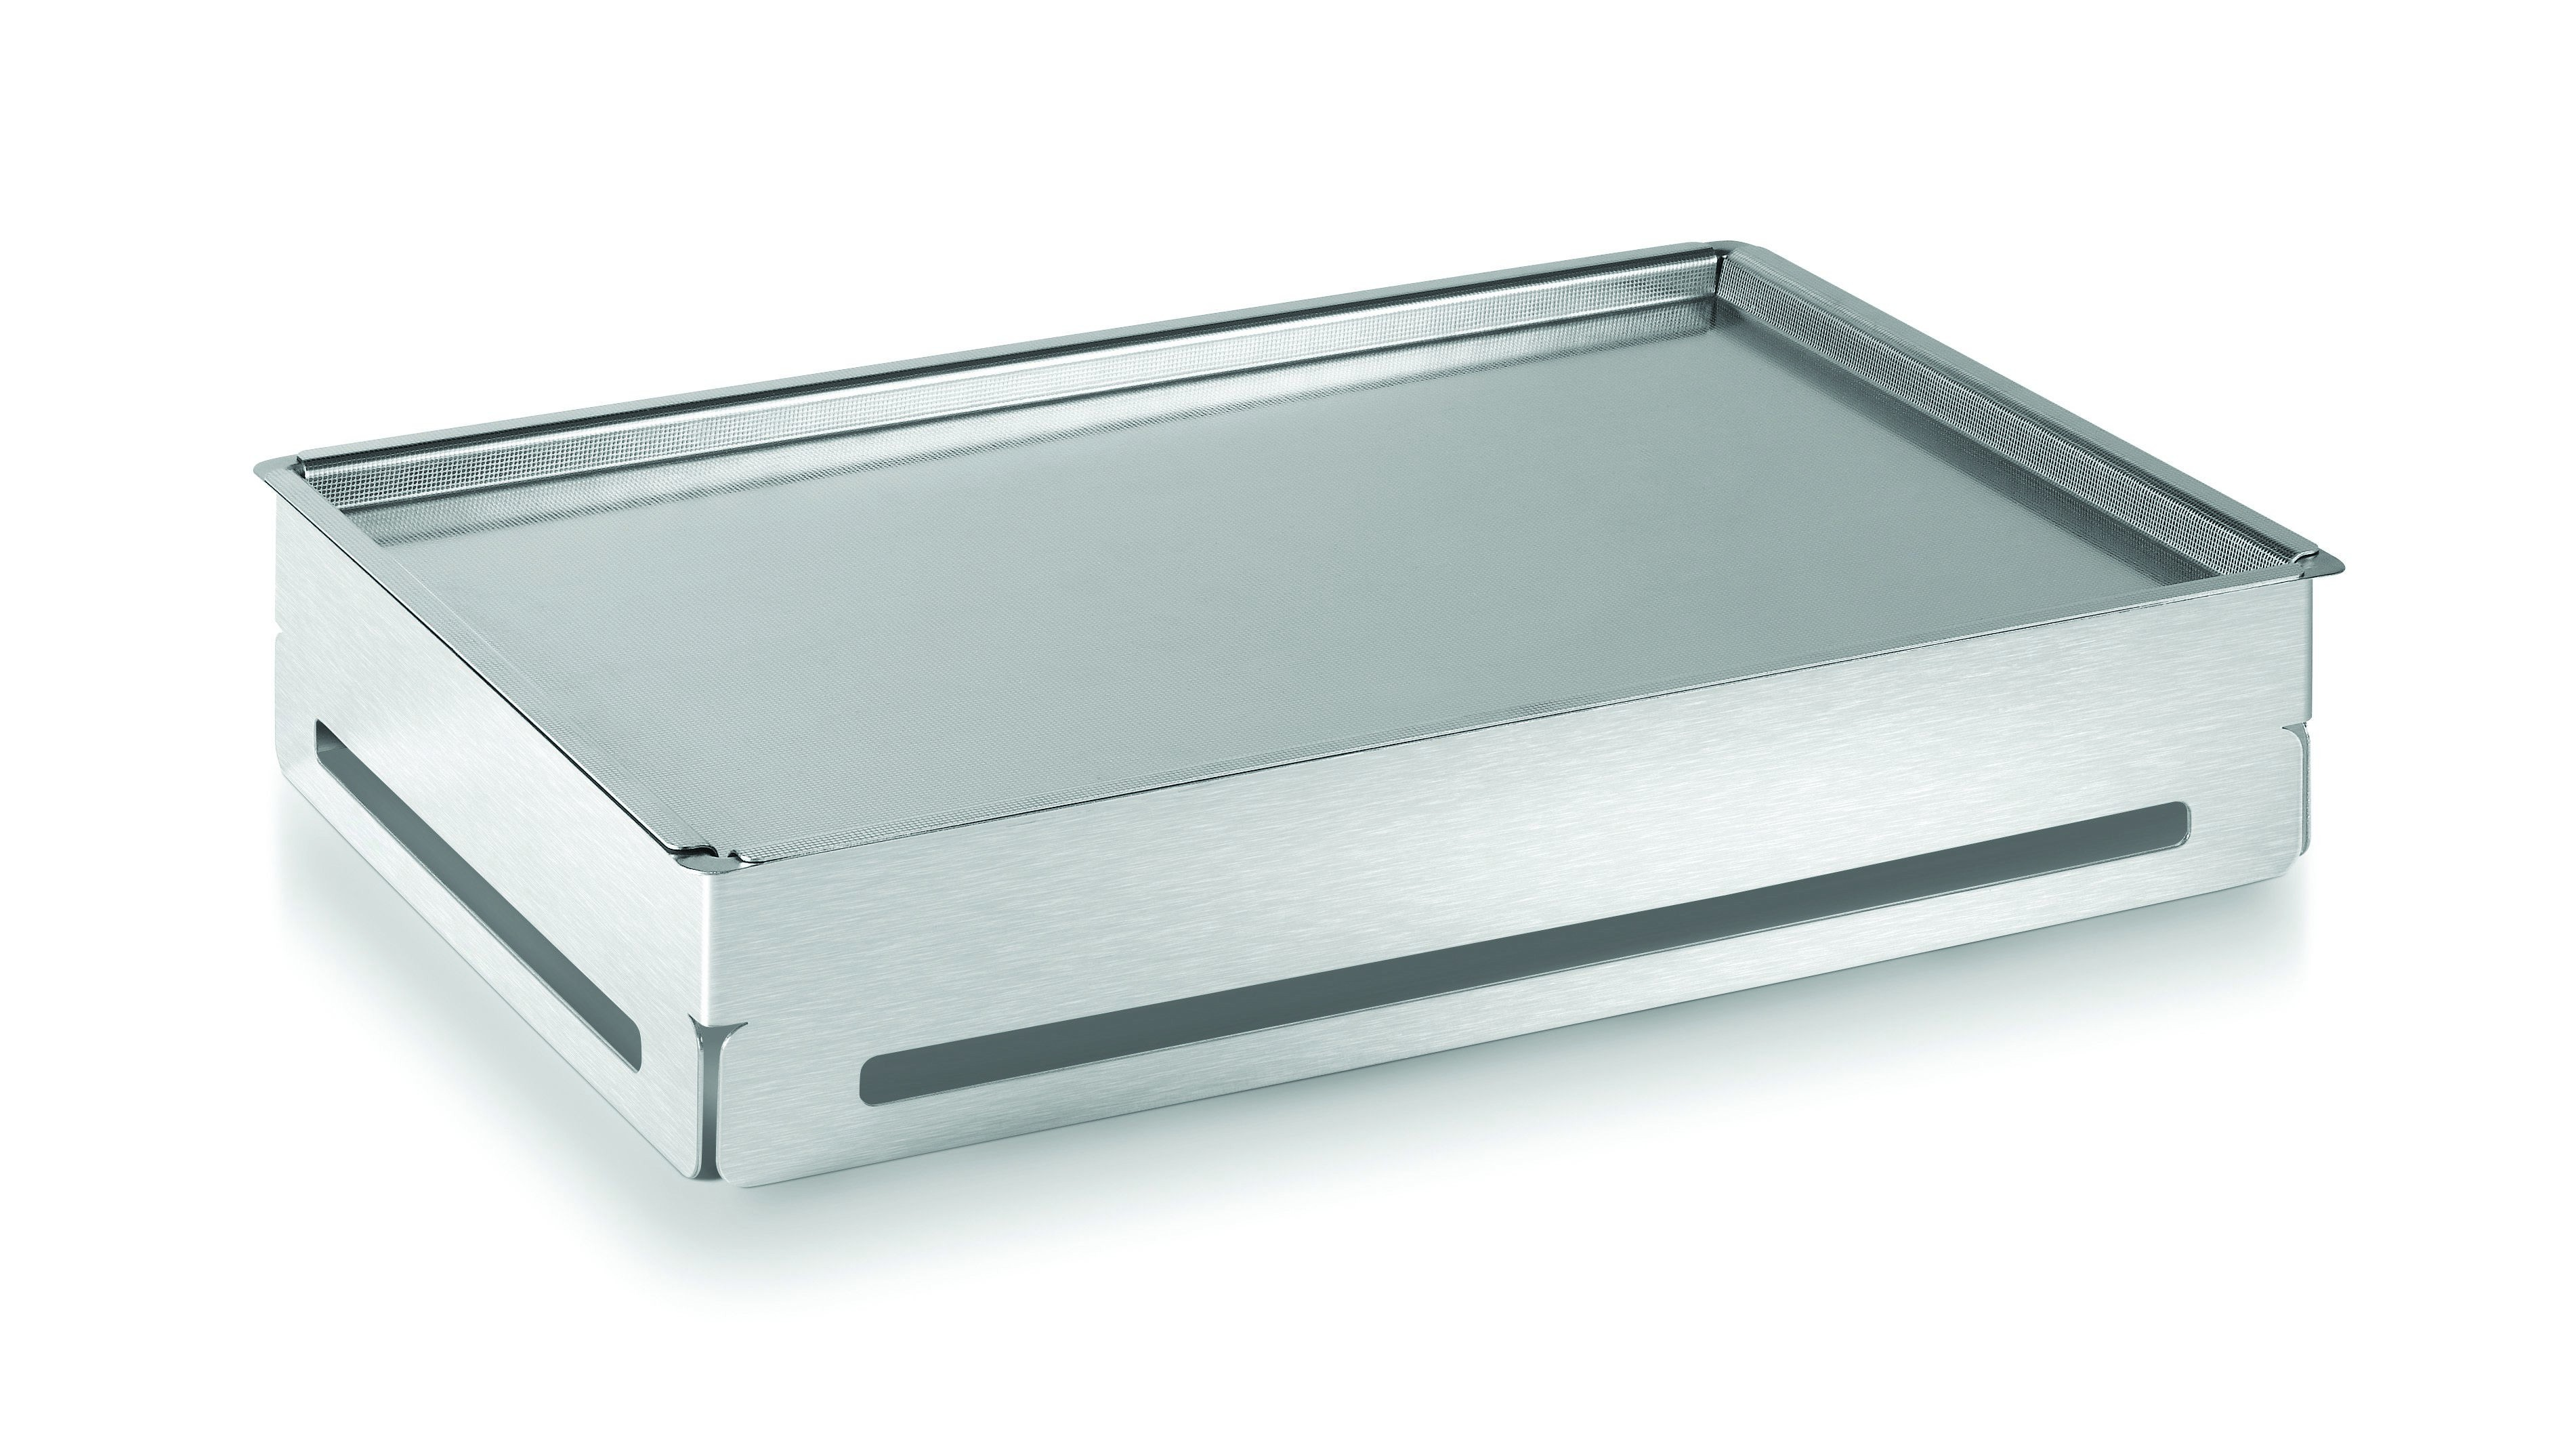 "Rosseto SM144 Rectangular Stainless Steel Cooler Buffet Set With Tray & Insert 21.75"" x 14.75"" x 4""H"